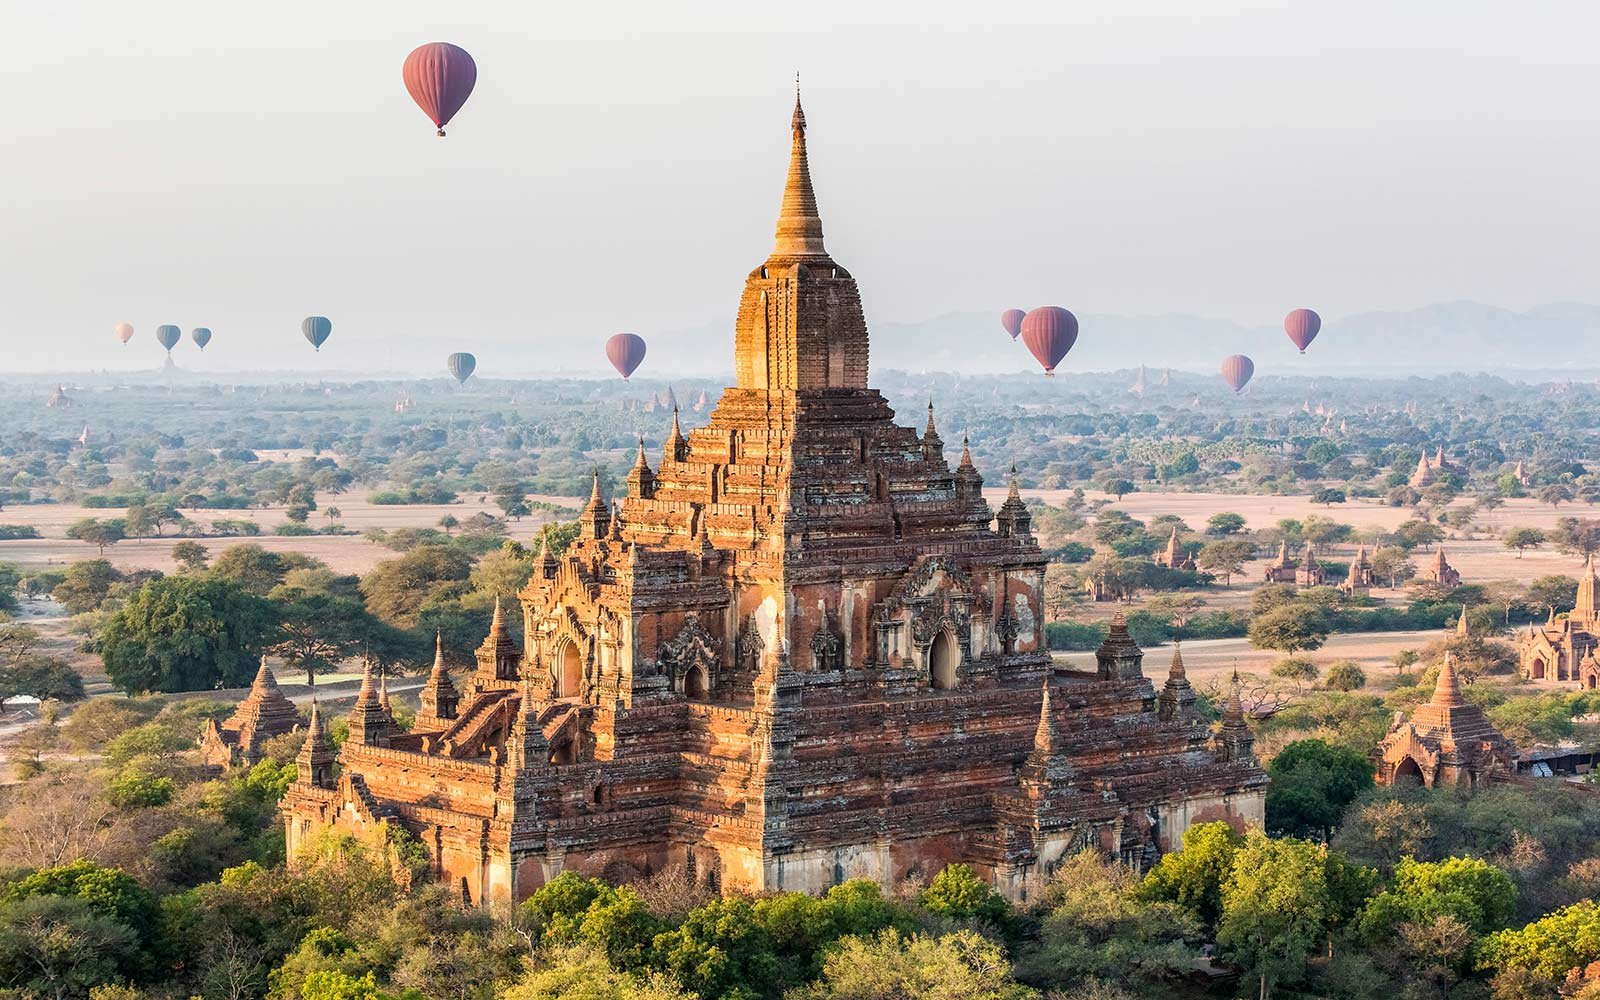 Hot air balloons and Sulamani Pahto temple, Bagan, Mandalay Region, Myanmar